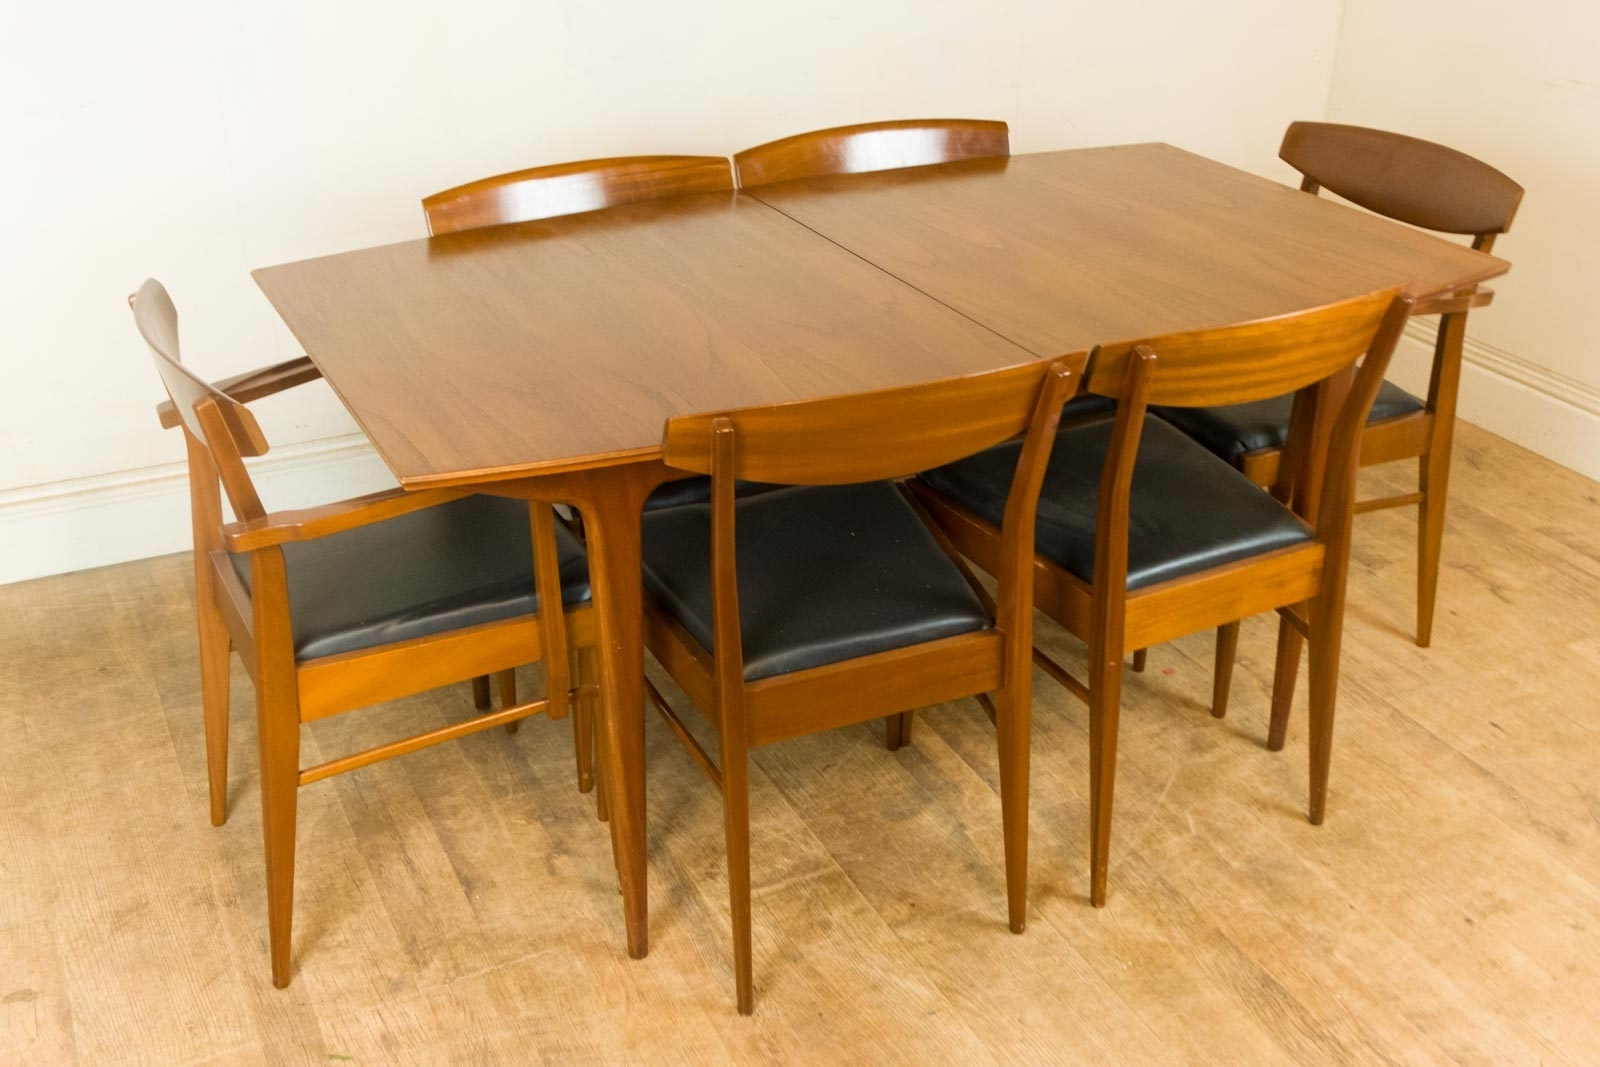 2018 Retro Extending Dining Tables In Vintage Retro Mid Century Teak Extending Dining Table And Formal (Gallery 18 of 25)